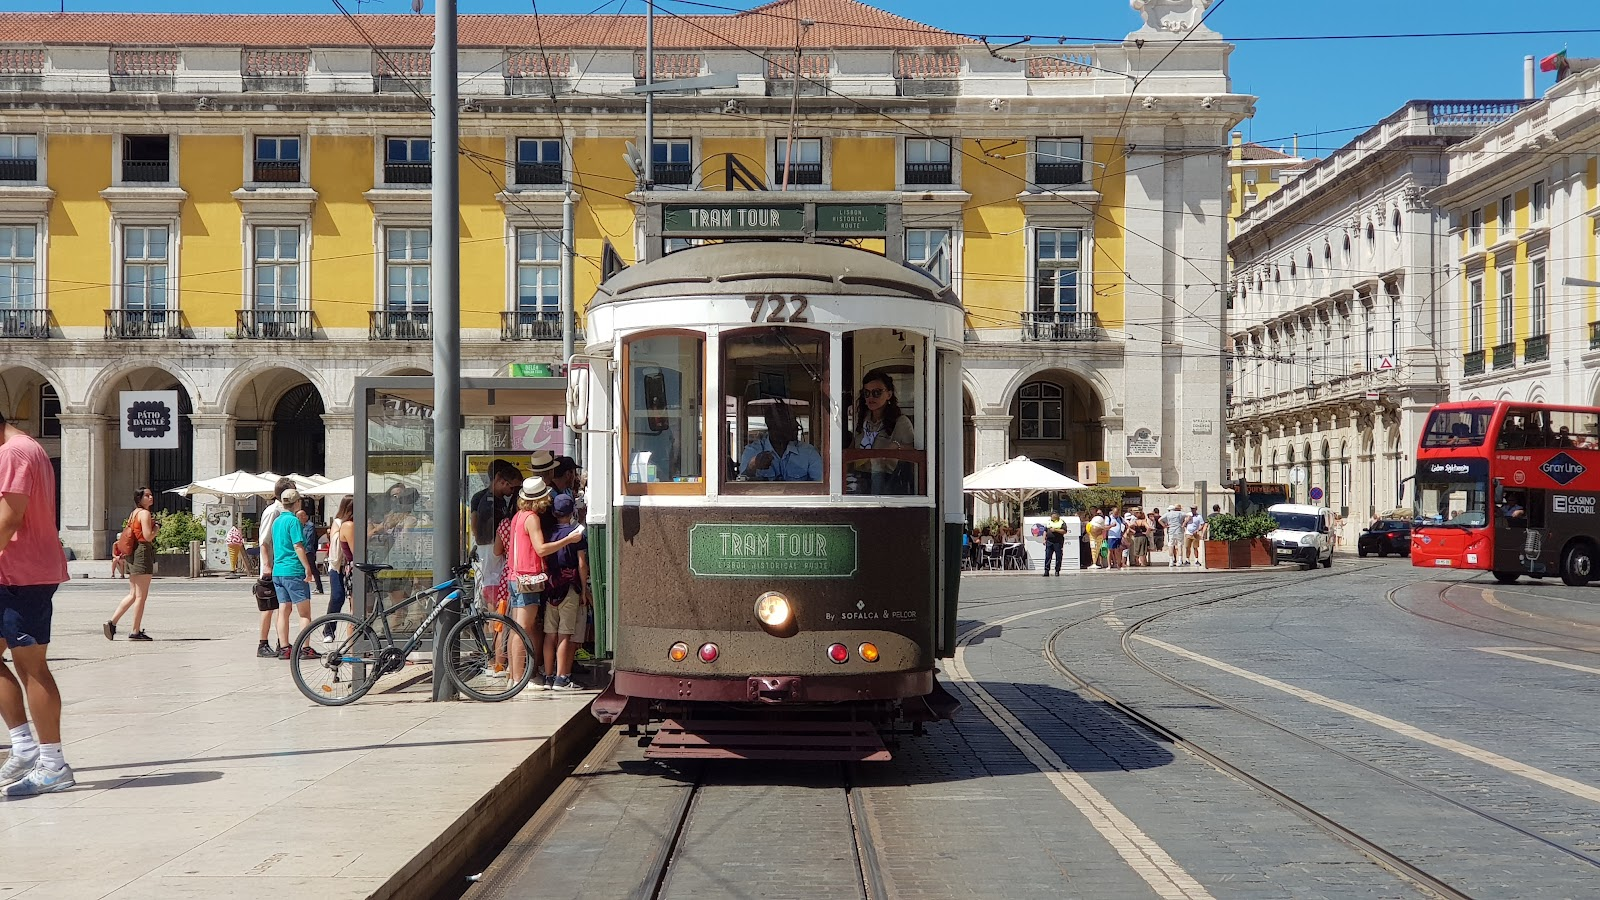 Trams are for tourists